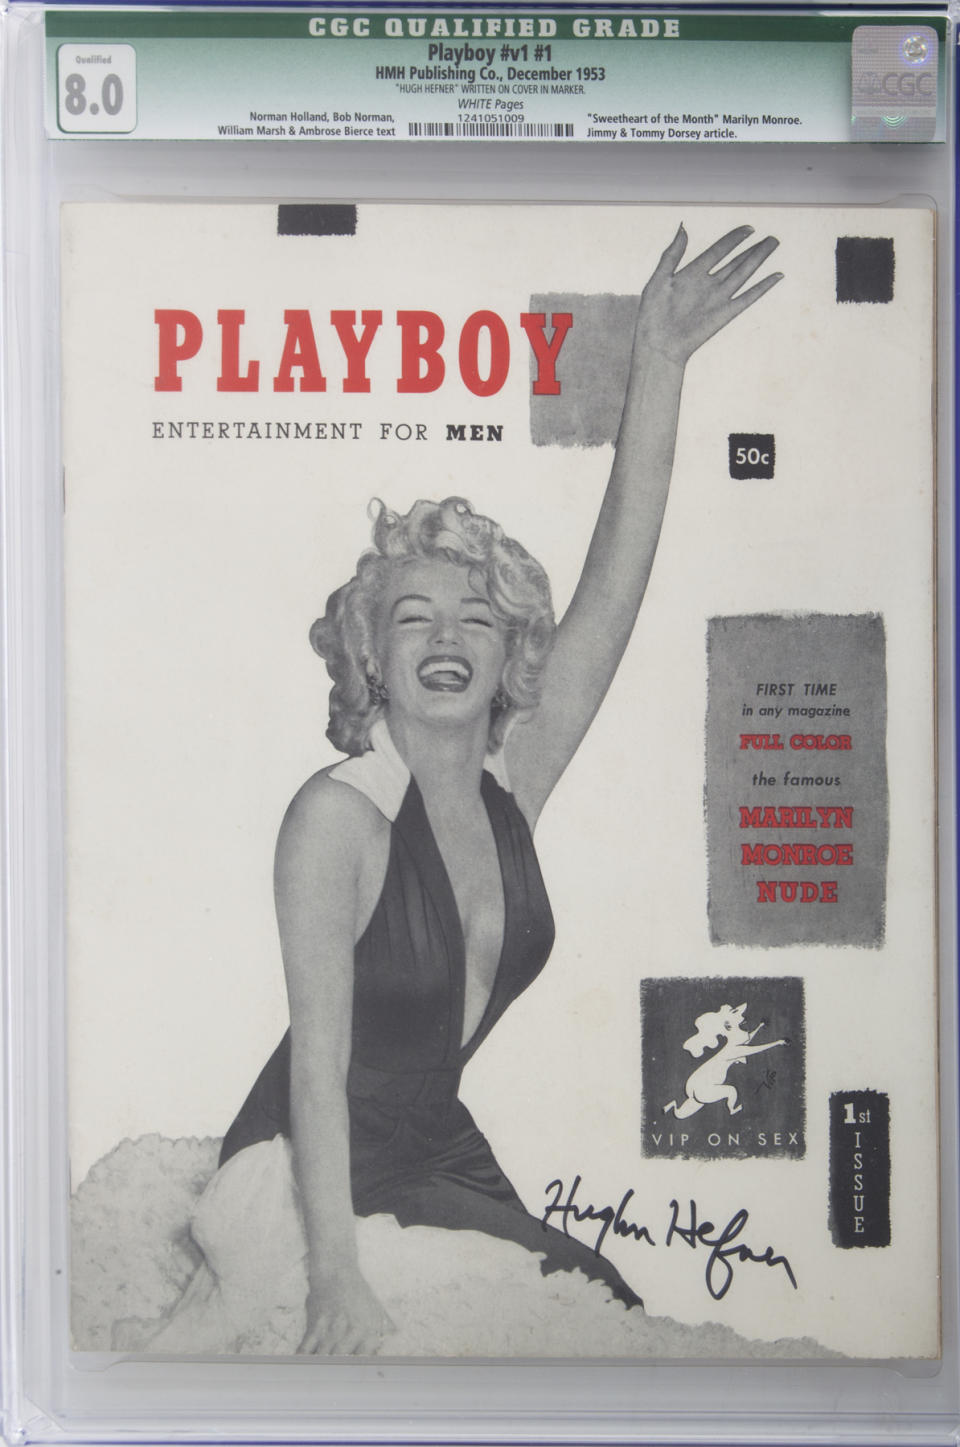 Playboy magazine signed by Hugh Hefner